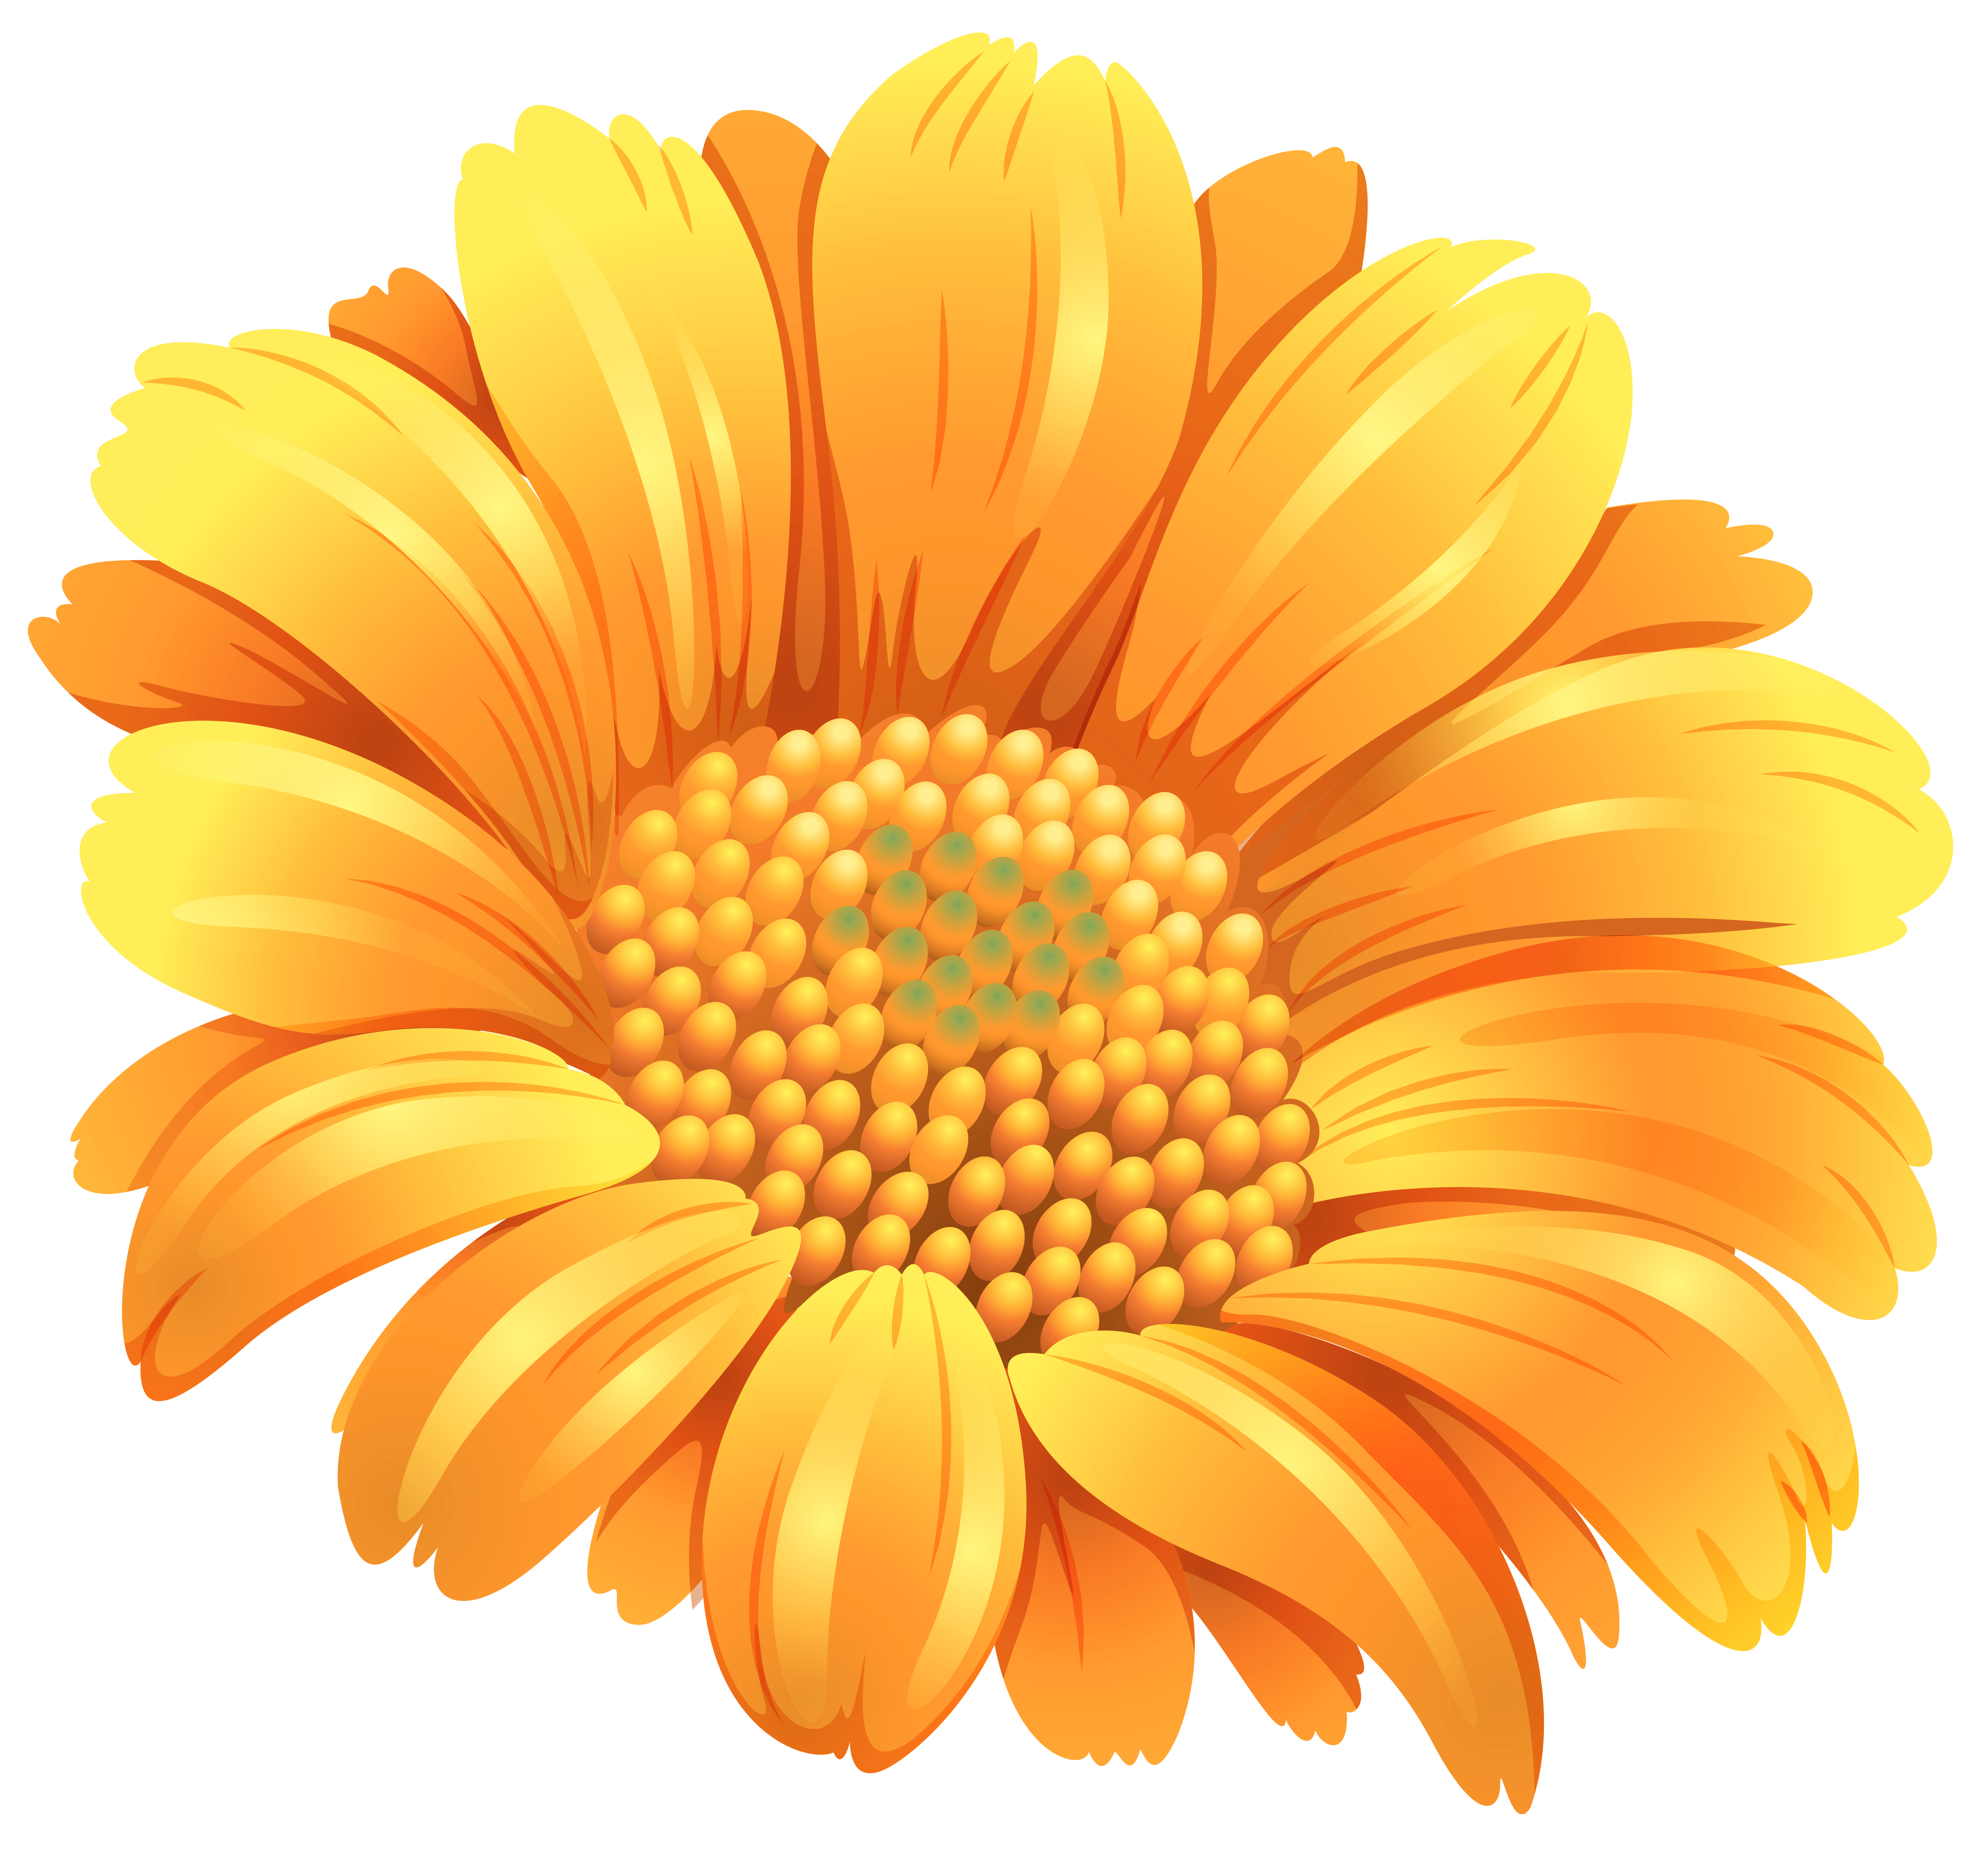 Orange Flower PNG Clipart Image.